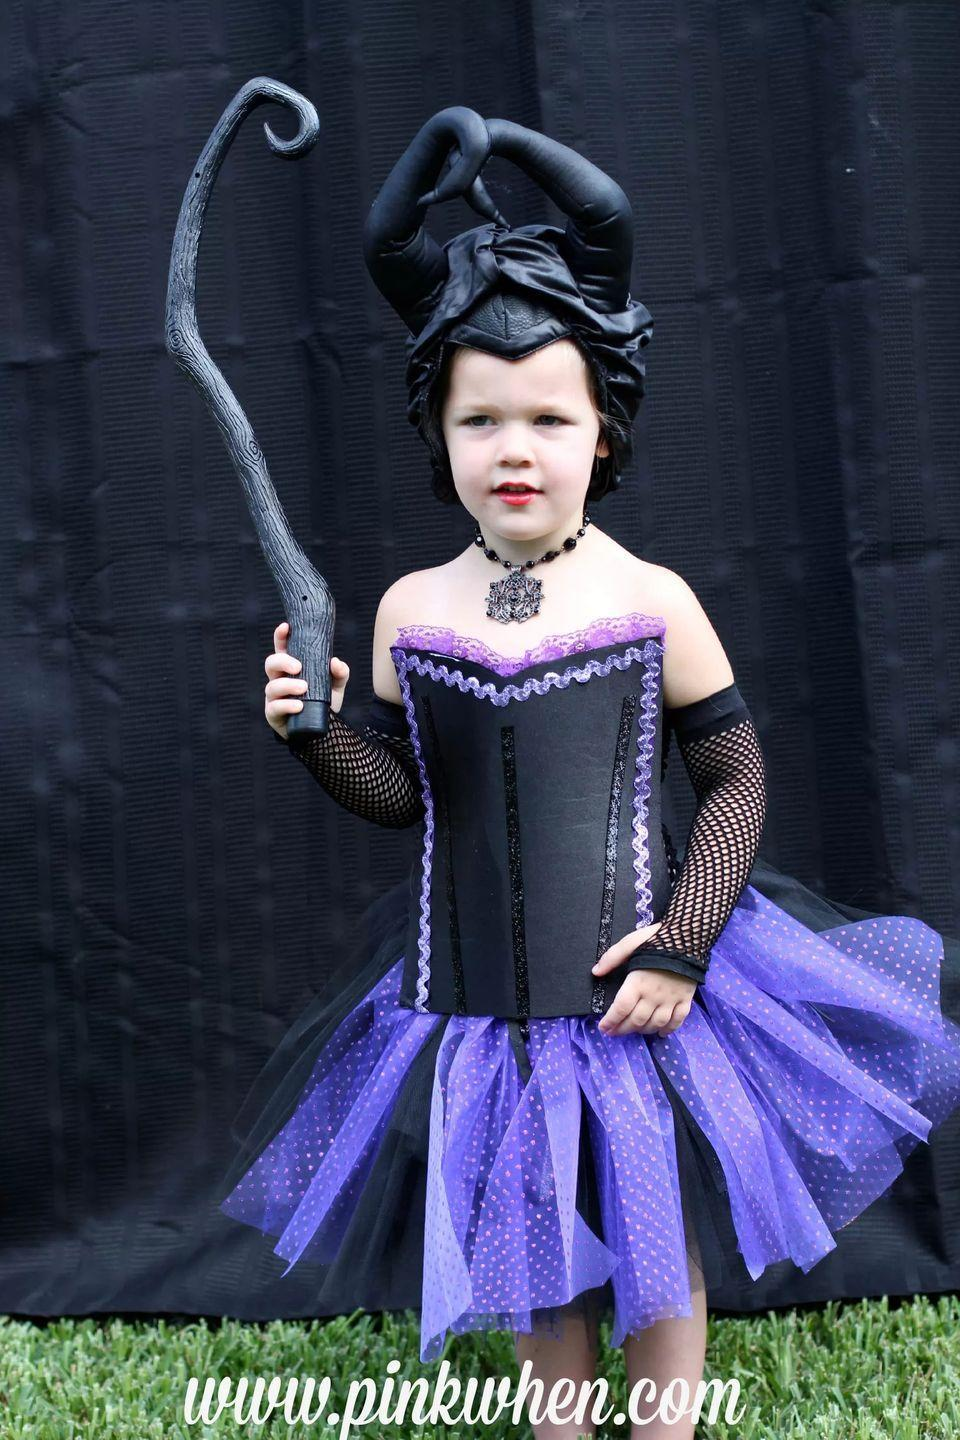 """<p>Thanks to clever use of a crochet band and Stitch Witch, this adorbs Maleficent costume is completely doable even for moms who don't like to sew. </p><p><strong>Get the tutorial at <a href=""""https://www.pinkwhen.com/diy-no-sew-maleficent-costume/"""" rel=""""nofollow noopener"""" target=""""_blank"""" data-ylk=""""slk:Pink When"""" class=""""link rapid-noclick-resp"""">Pink When</a>. </strong></p><p><a class=""""link rapid-noclick-resp"""" href=""""https://www.amazon.com/s?k=black+ribbon&ref=nb_sb_noss_1&tag=syn-yahoo-20&ascsubtag=%5Bartid%7C10050.g.36674692%5Bsrc%7Cyahoo-us"""" rel=""""nofollow noopener"""" target=""""_blank"""" data-ylk=""""slk:SHOP BLACK RIBBON"""">SHOP BLACK RIBBON</a><br></p>"""